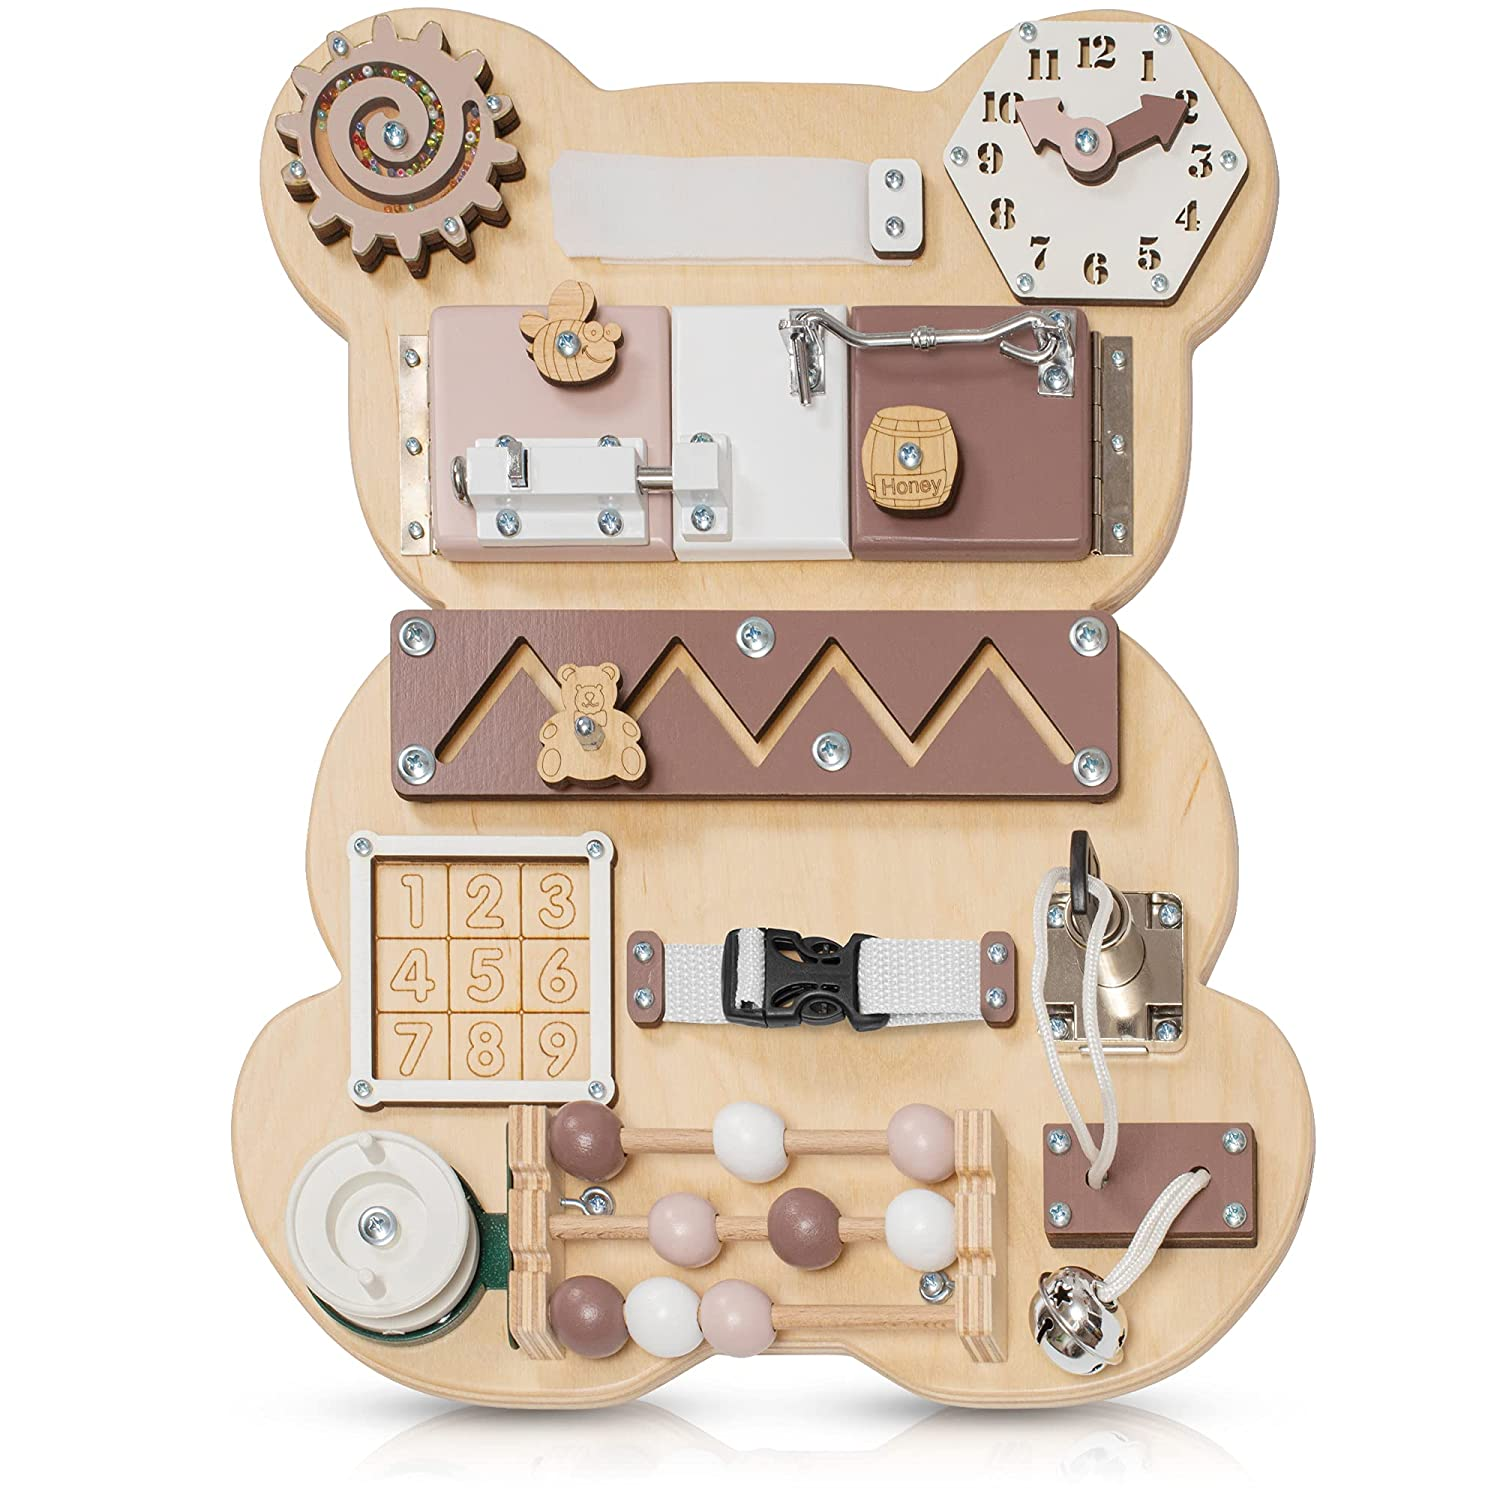 Toddler Busy Board Bear for 1 2 3 Year Old - Wooden Handmade Baby Sensory Activity Boards with Keys, Lock, Latches, Time Telling Clock, Buckle - Travel Car Plane Montessori Toys (Nature)